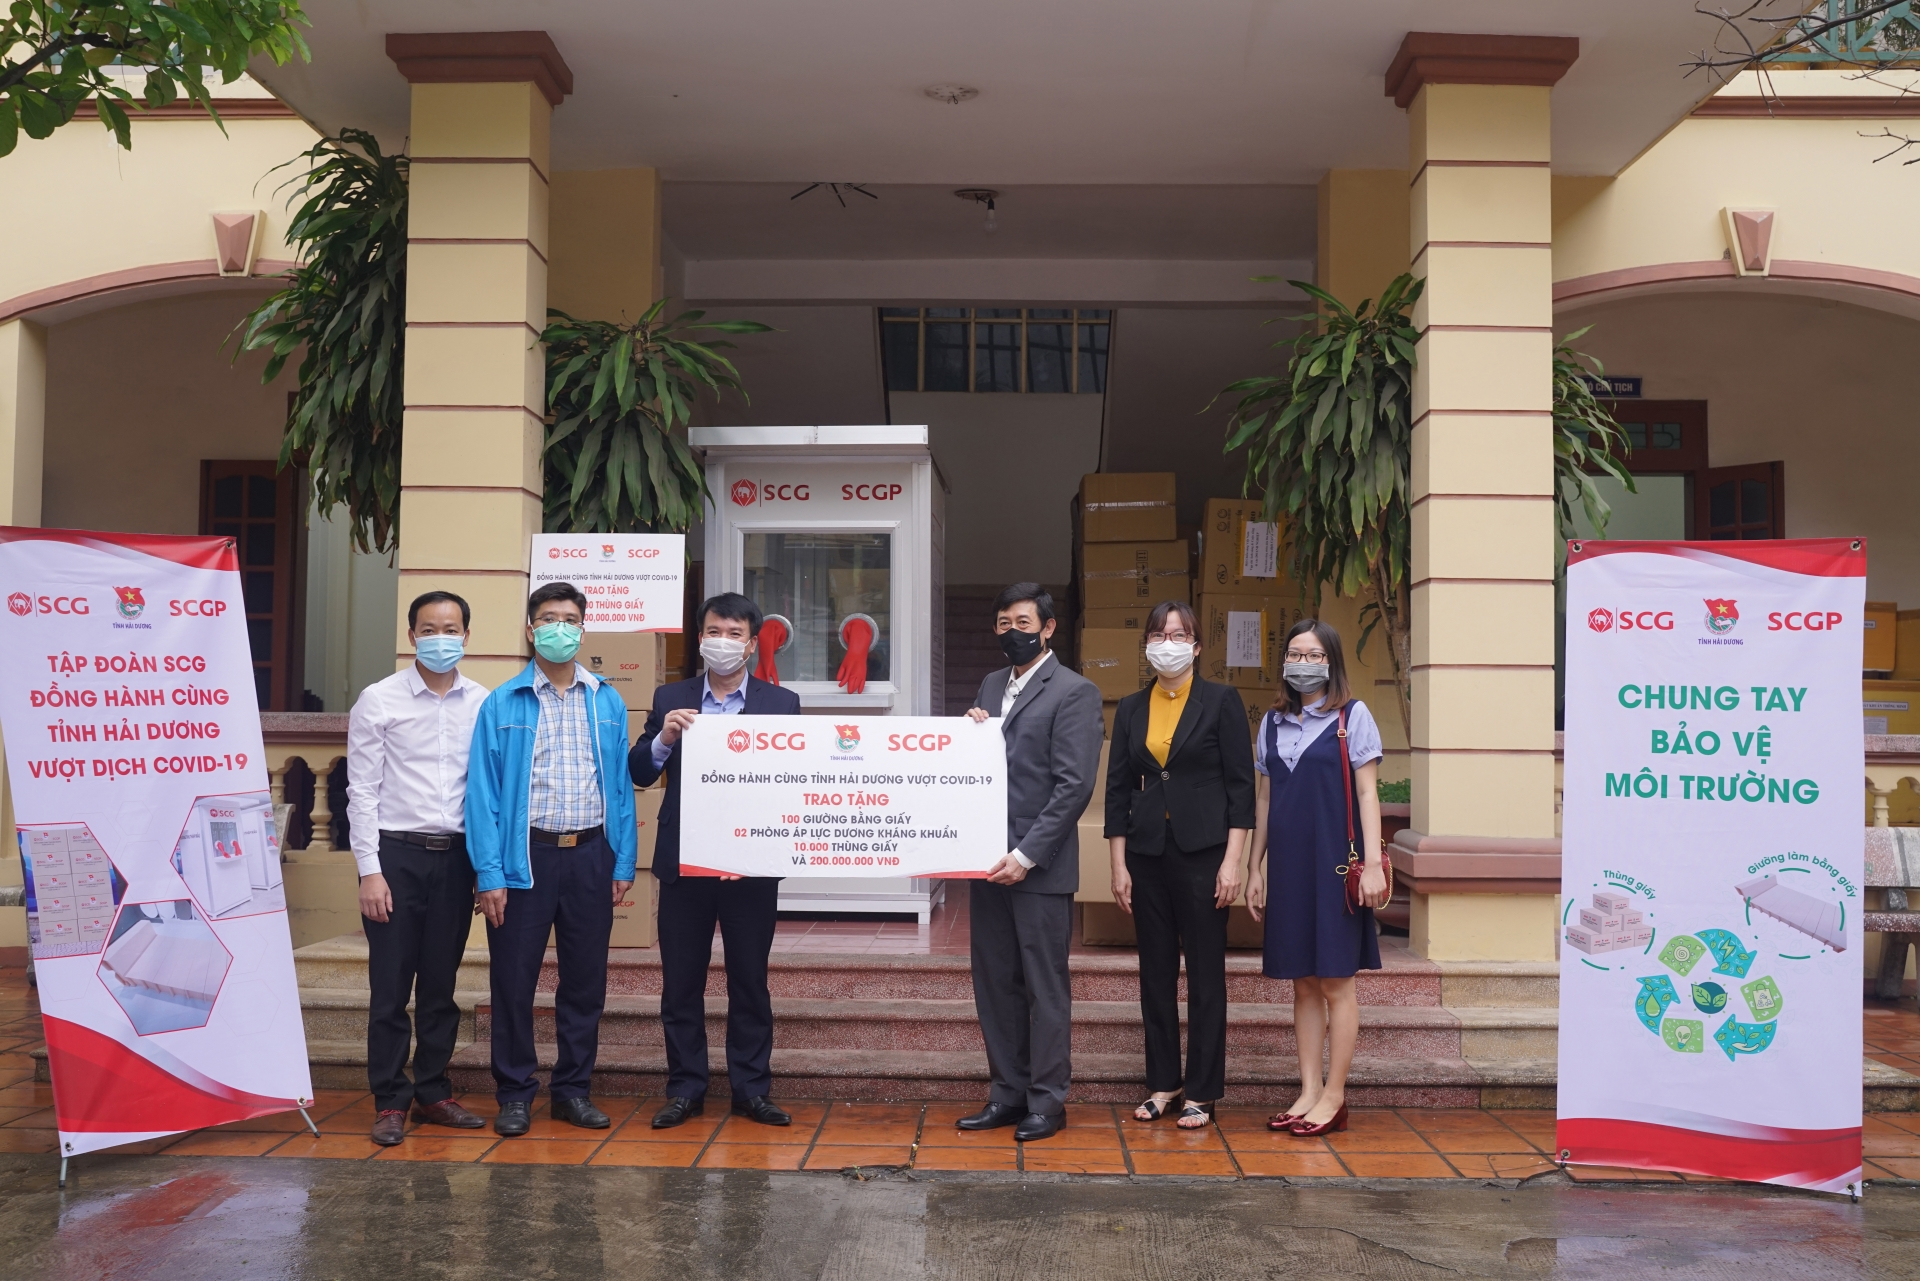 SCGP lends innovative solutions to fight COVID-19 in Vietnam